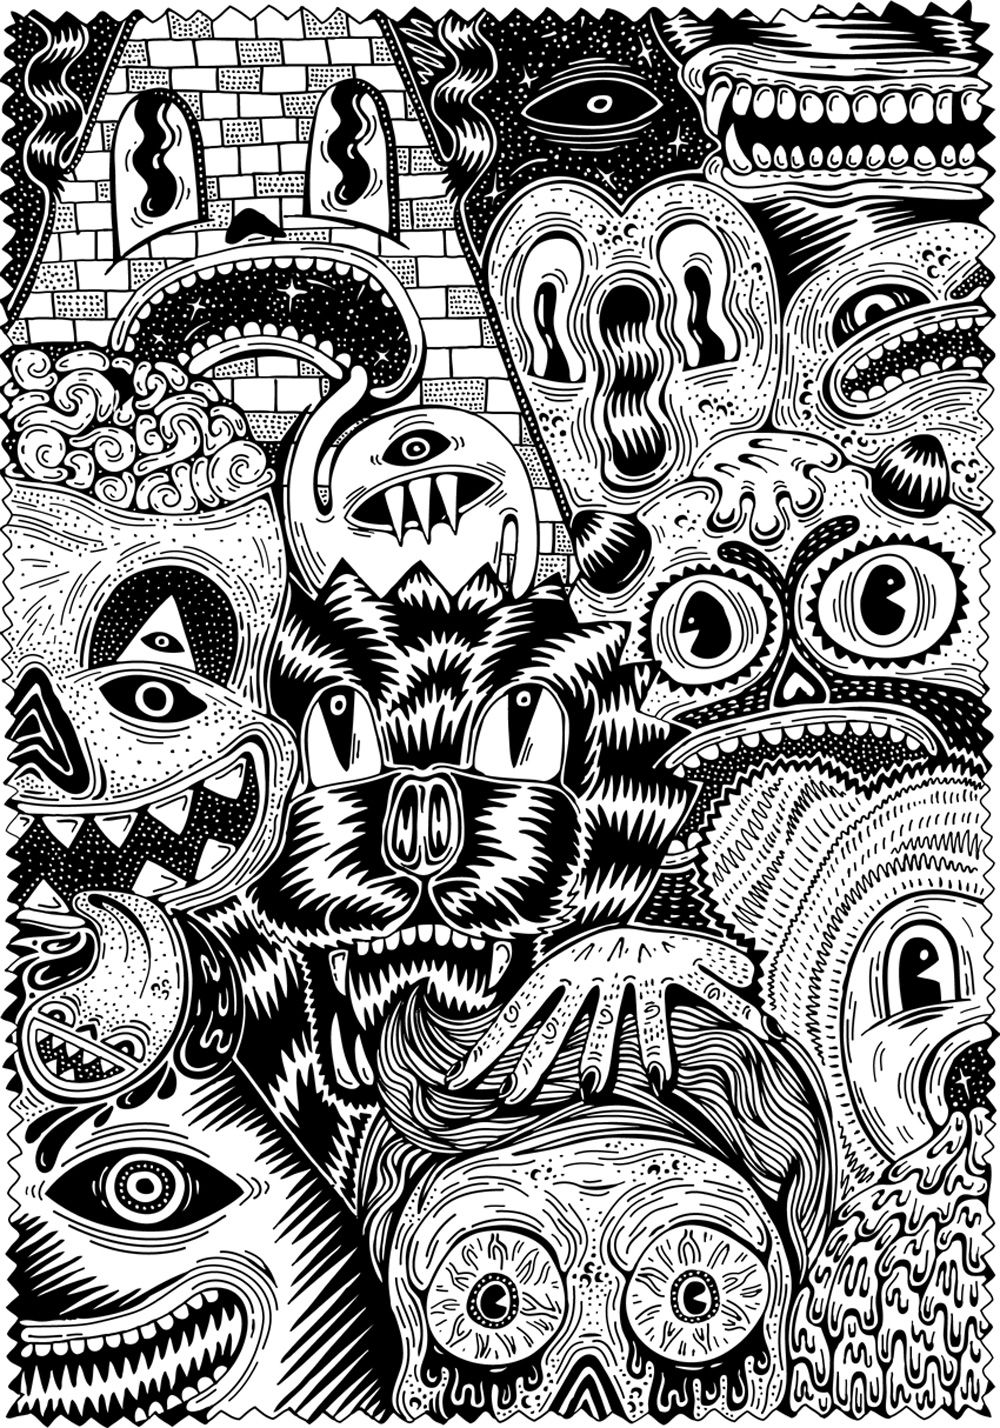 Fr free printable adult coloring pages online - Free Coloring Page Warning Scary Coloring Perfect For Halloween But Yes Adults Can Color It Too